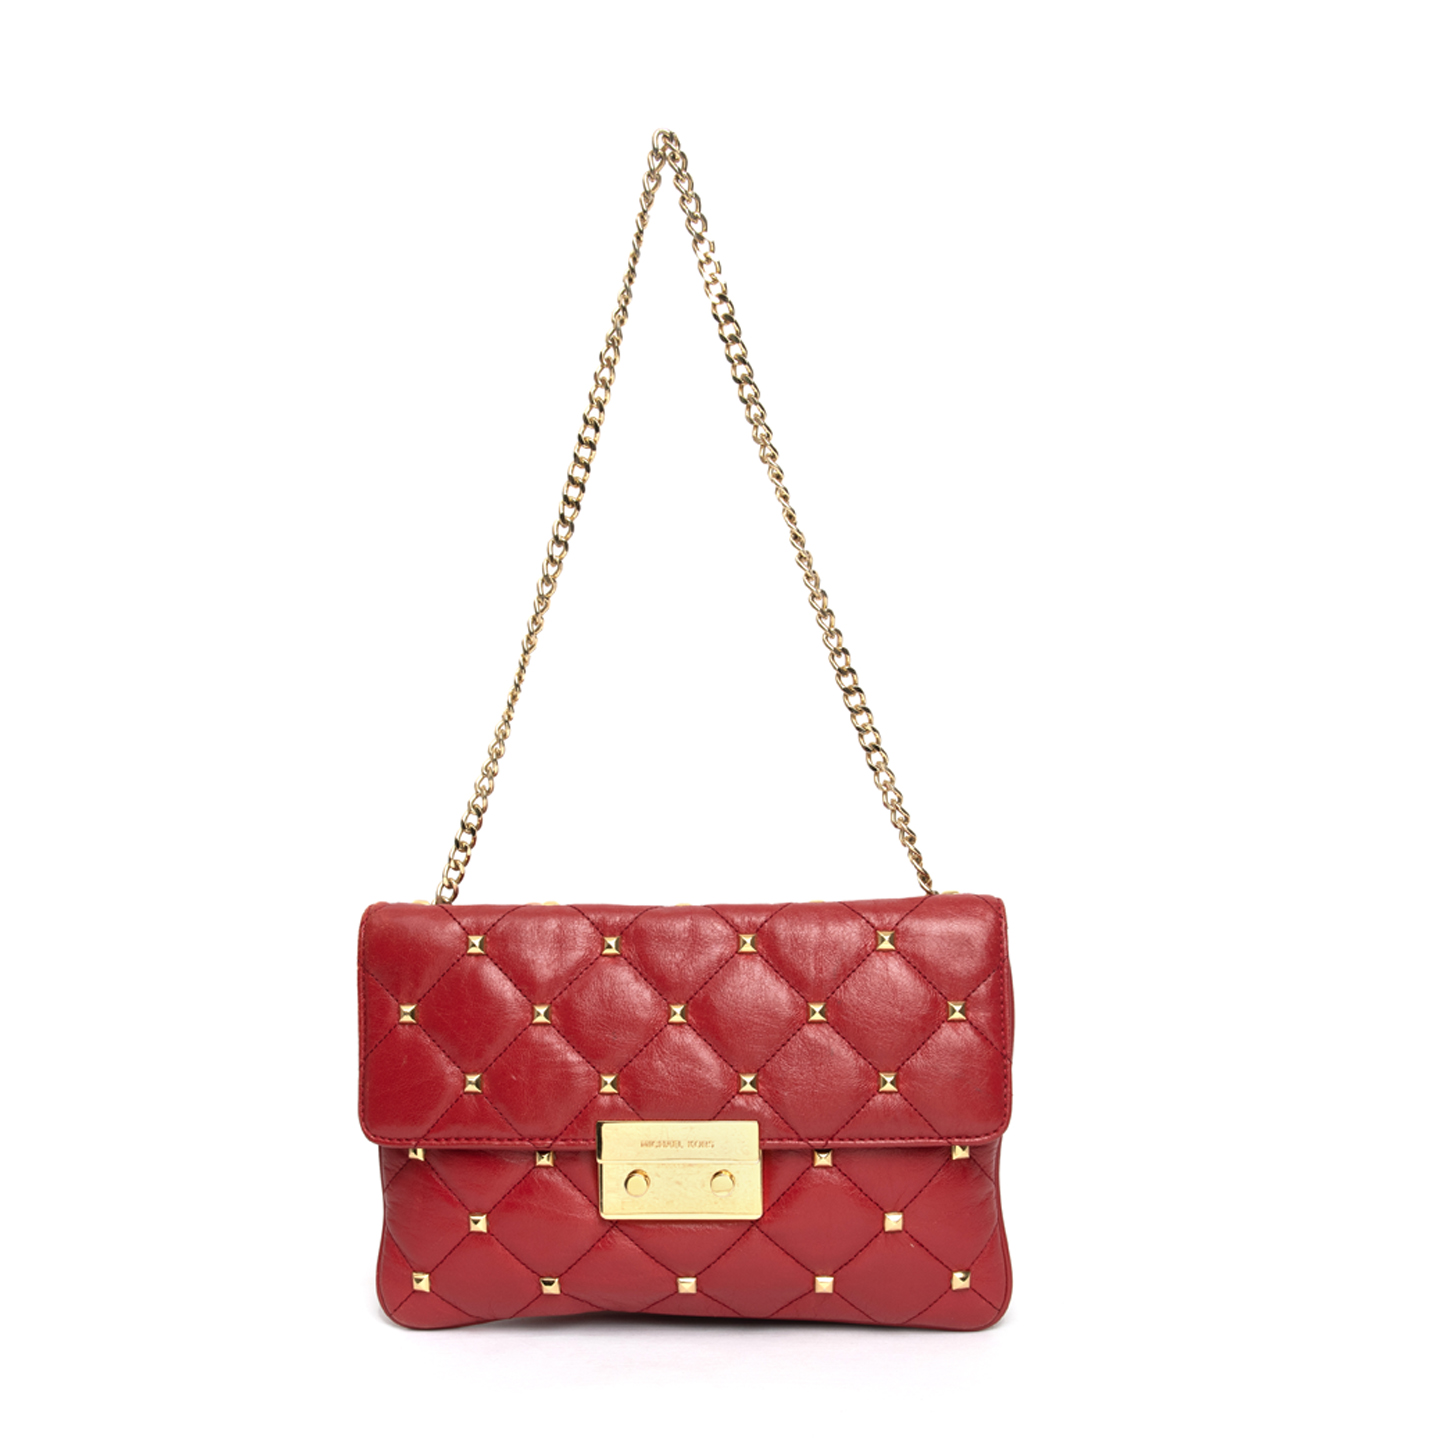 57293fc0b4c7 Michael Kors Red Sloan Quilted Stud Clutch Bag - LabelCentric